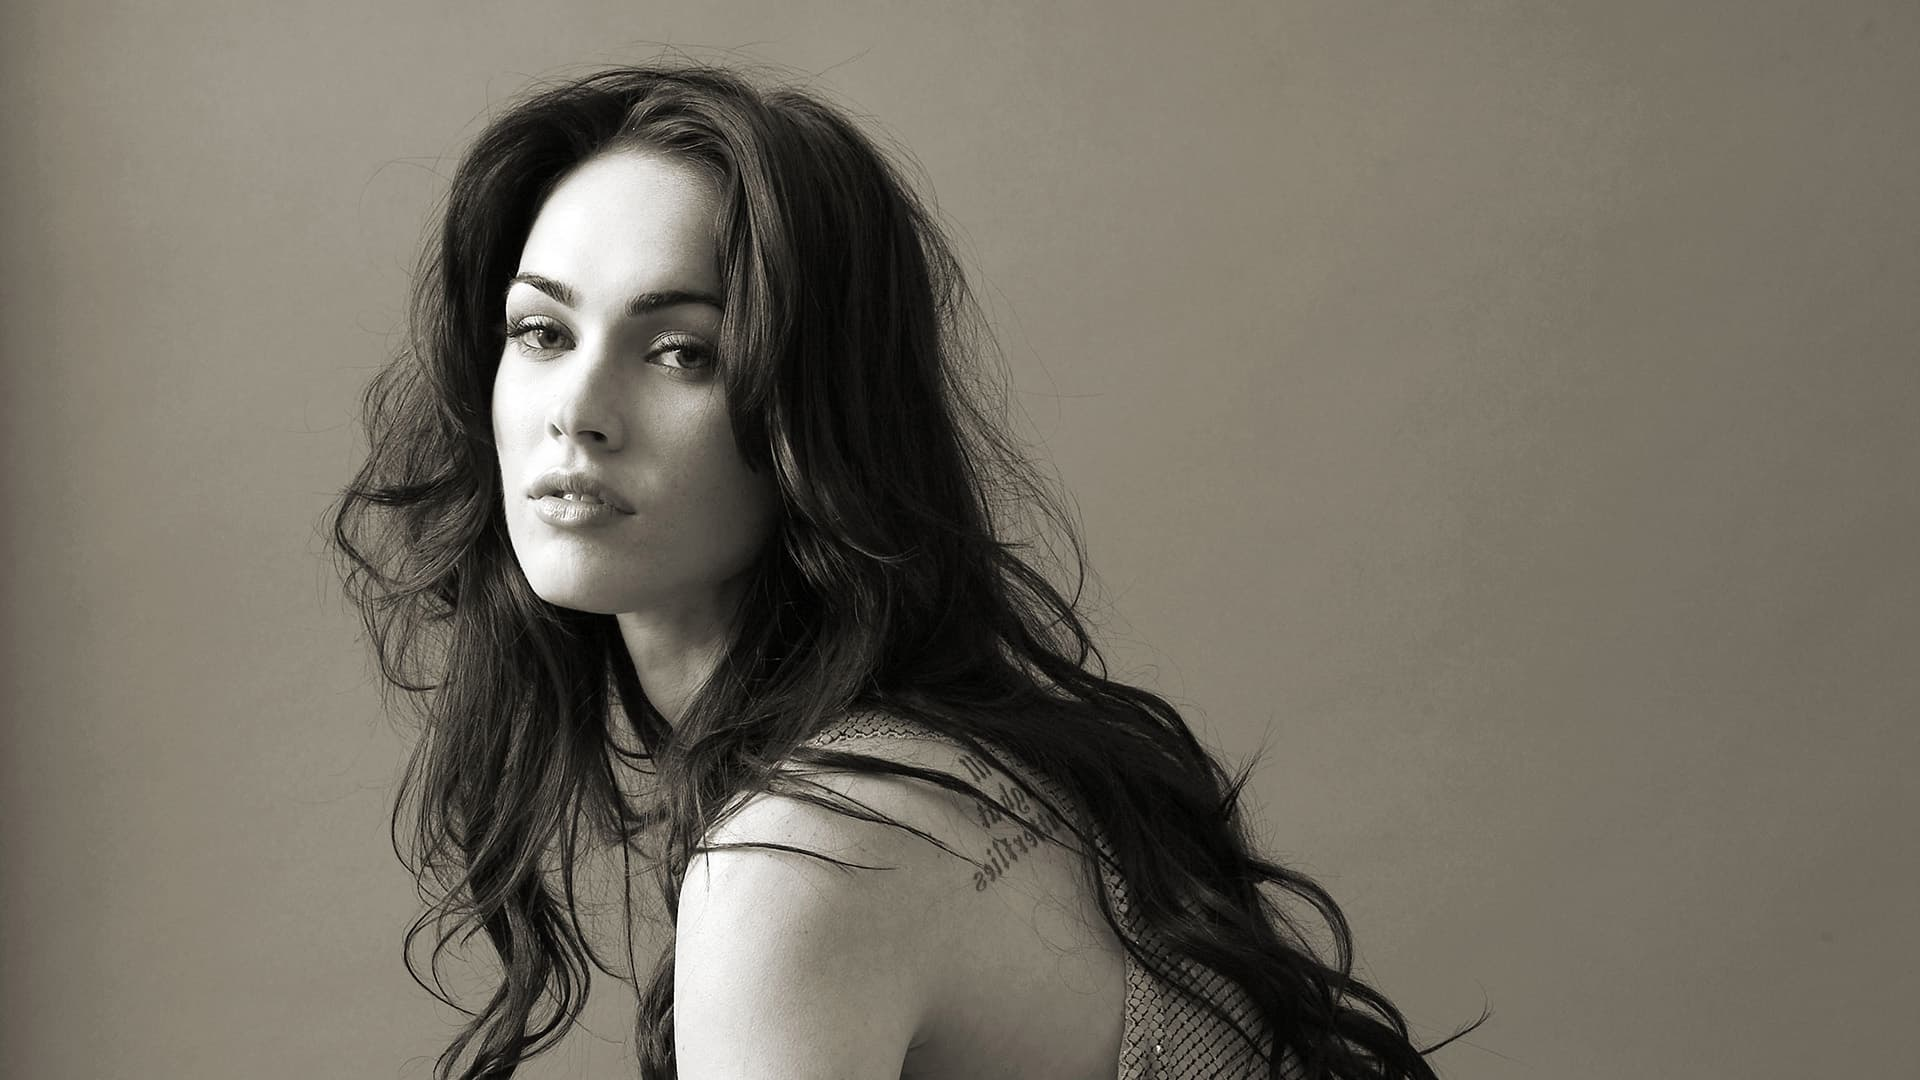 Megan Fox screensaver bw